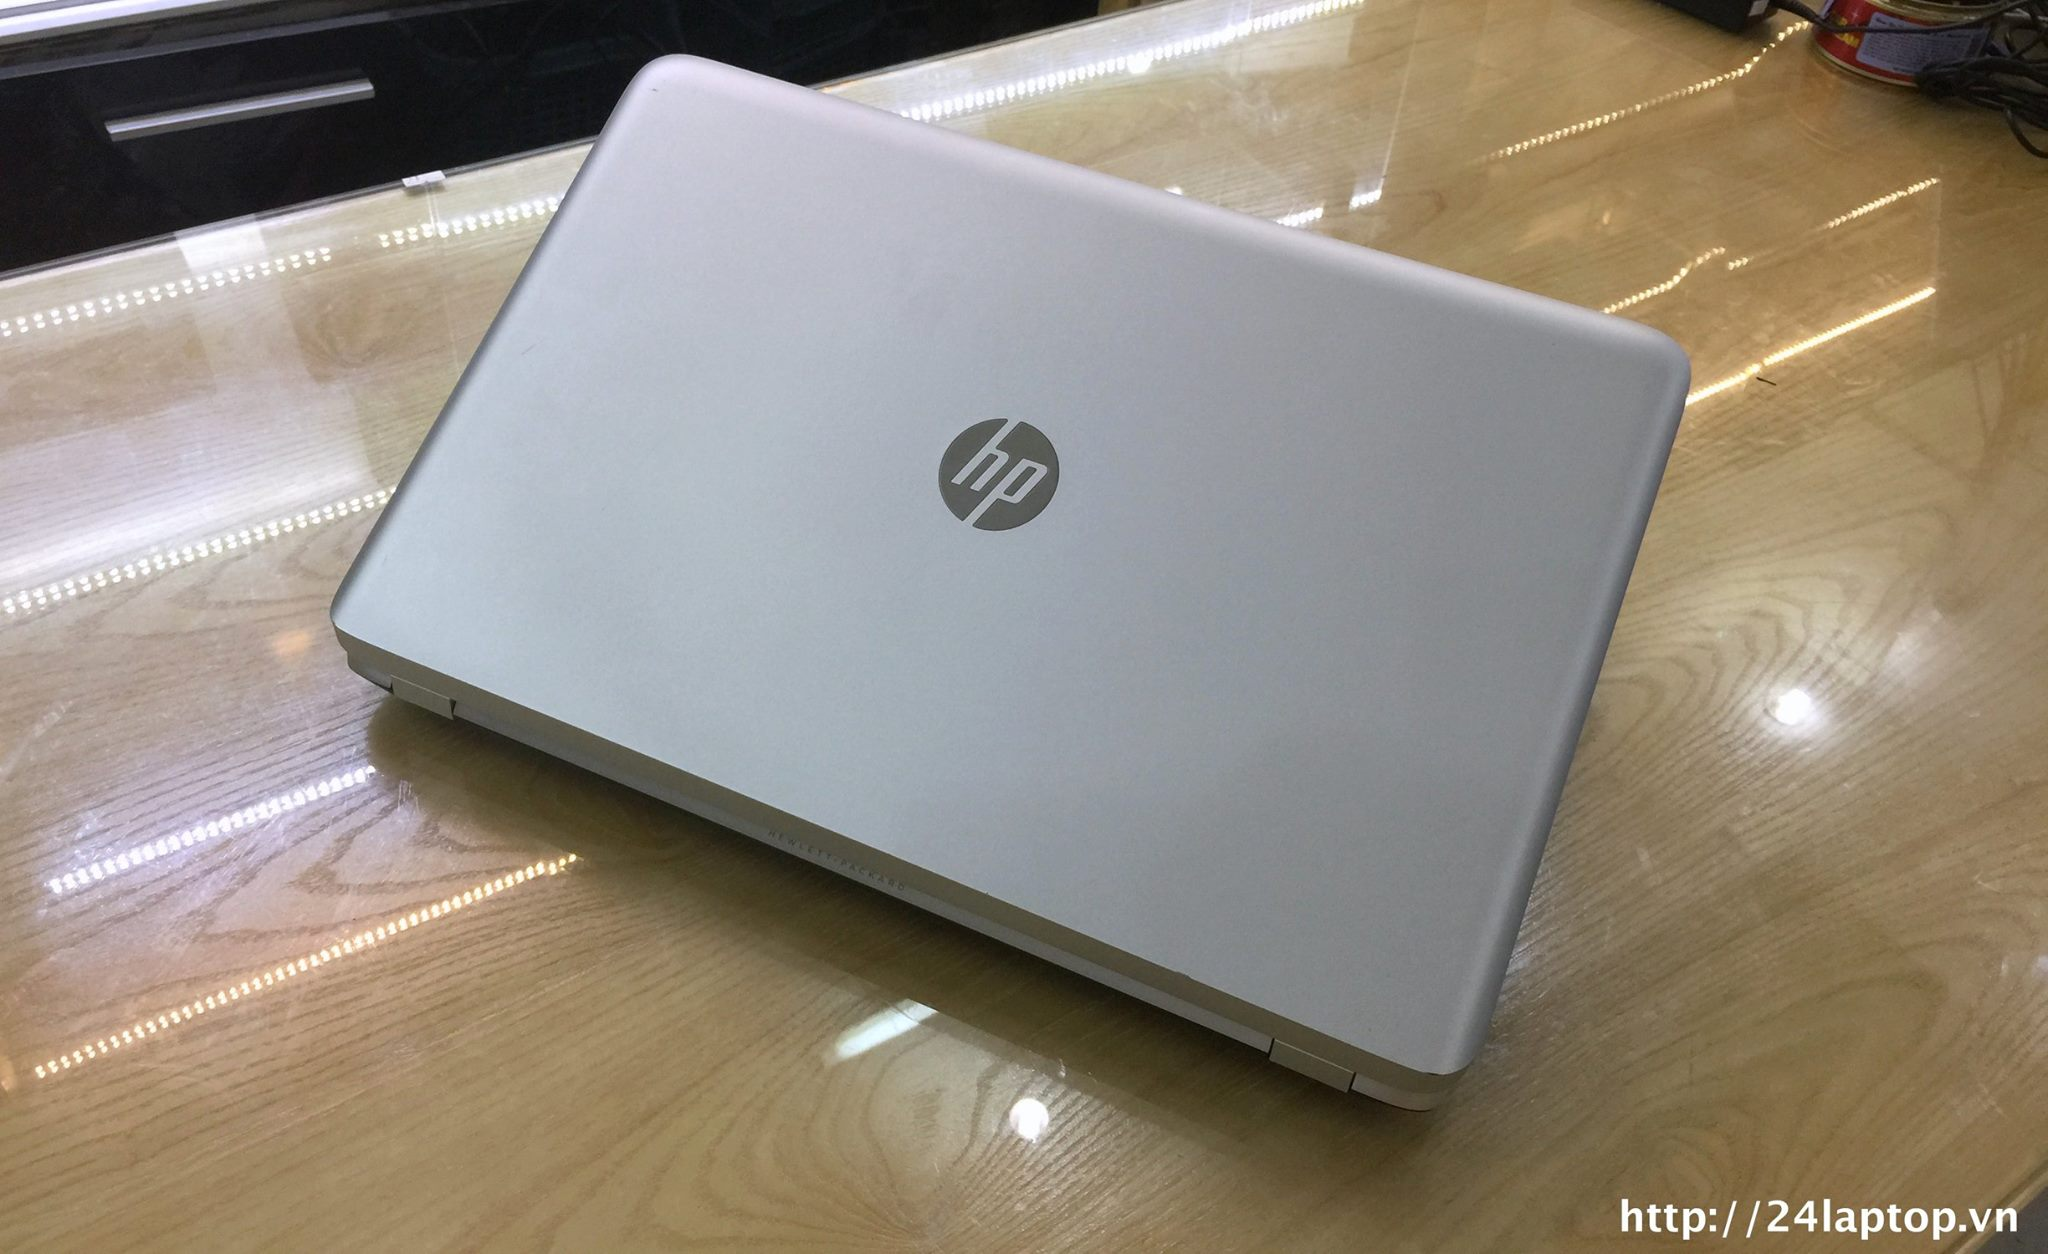 HP Envy 17 Core i7 BeatsAudio_1.jpg